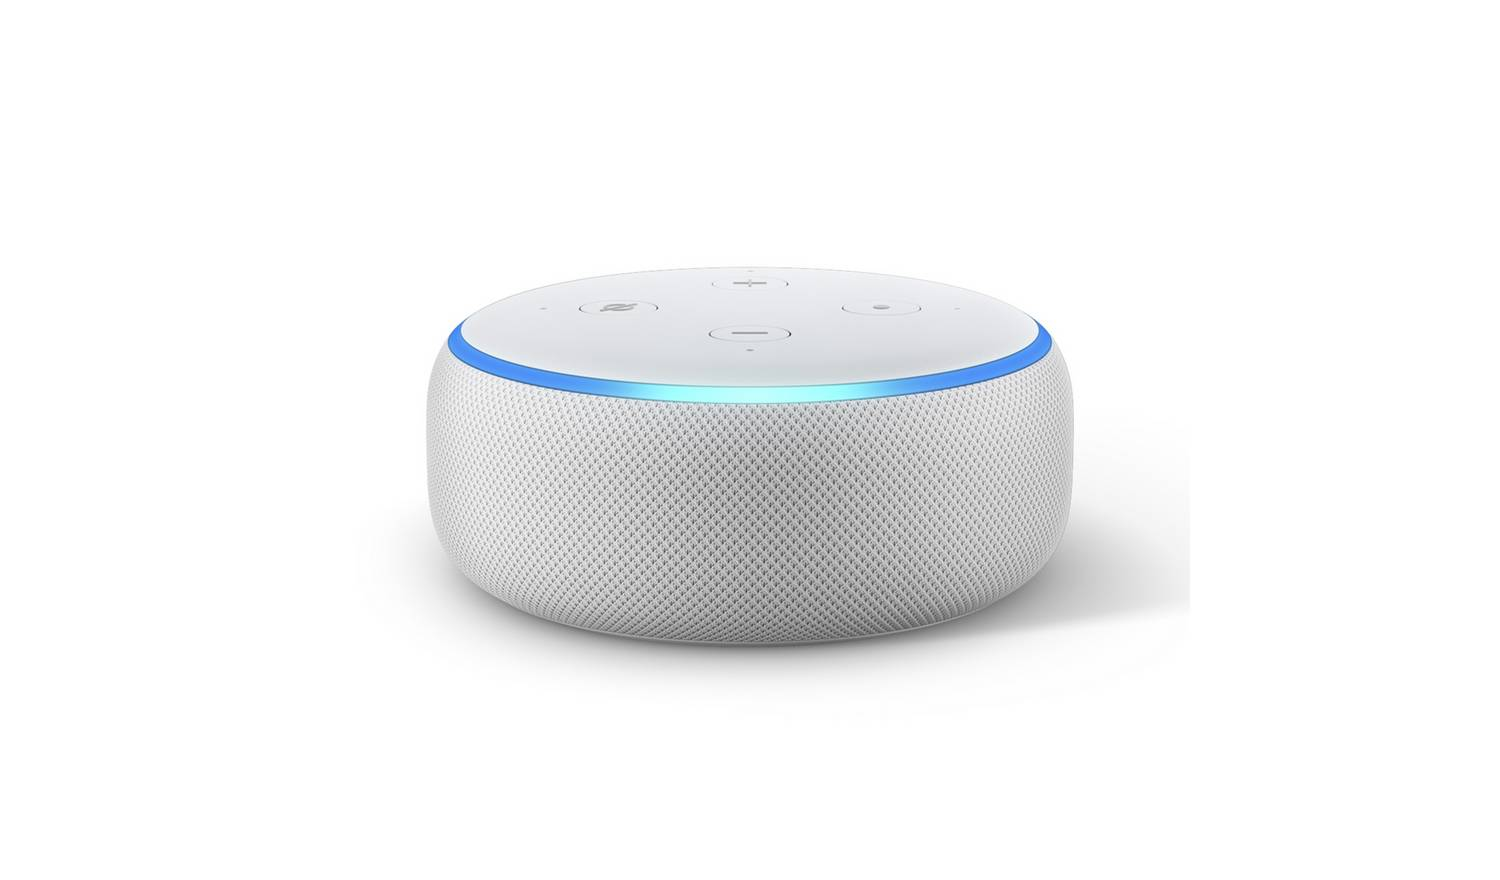 Amazon Echo Dot - White